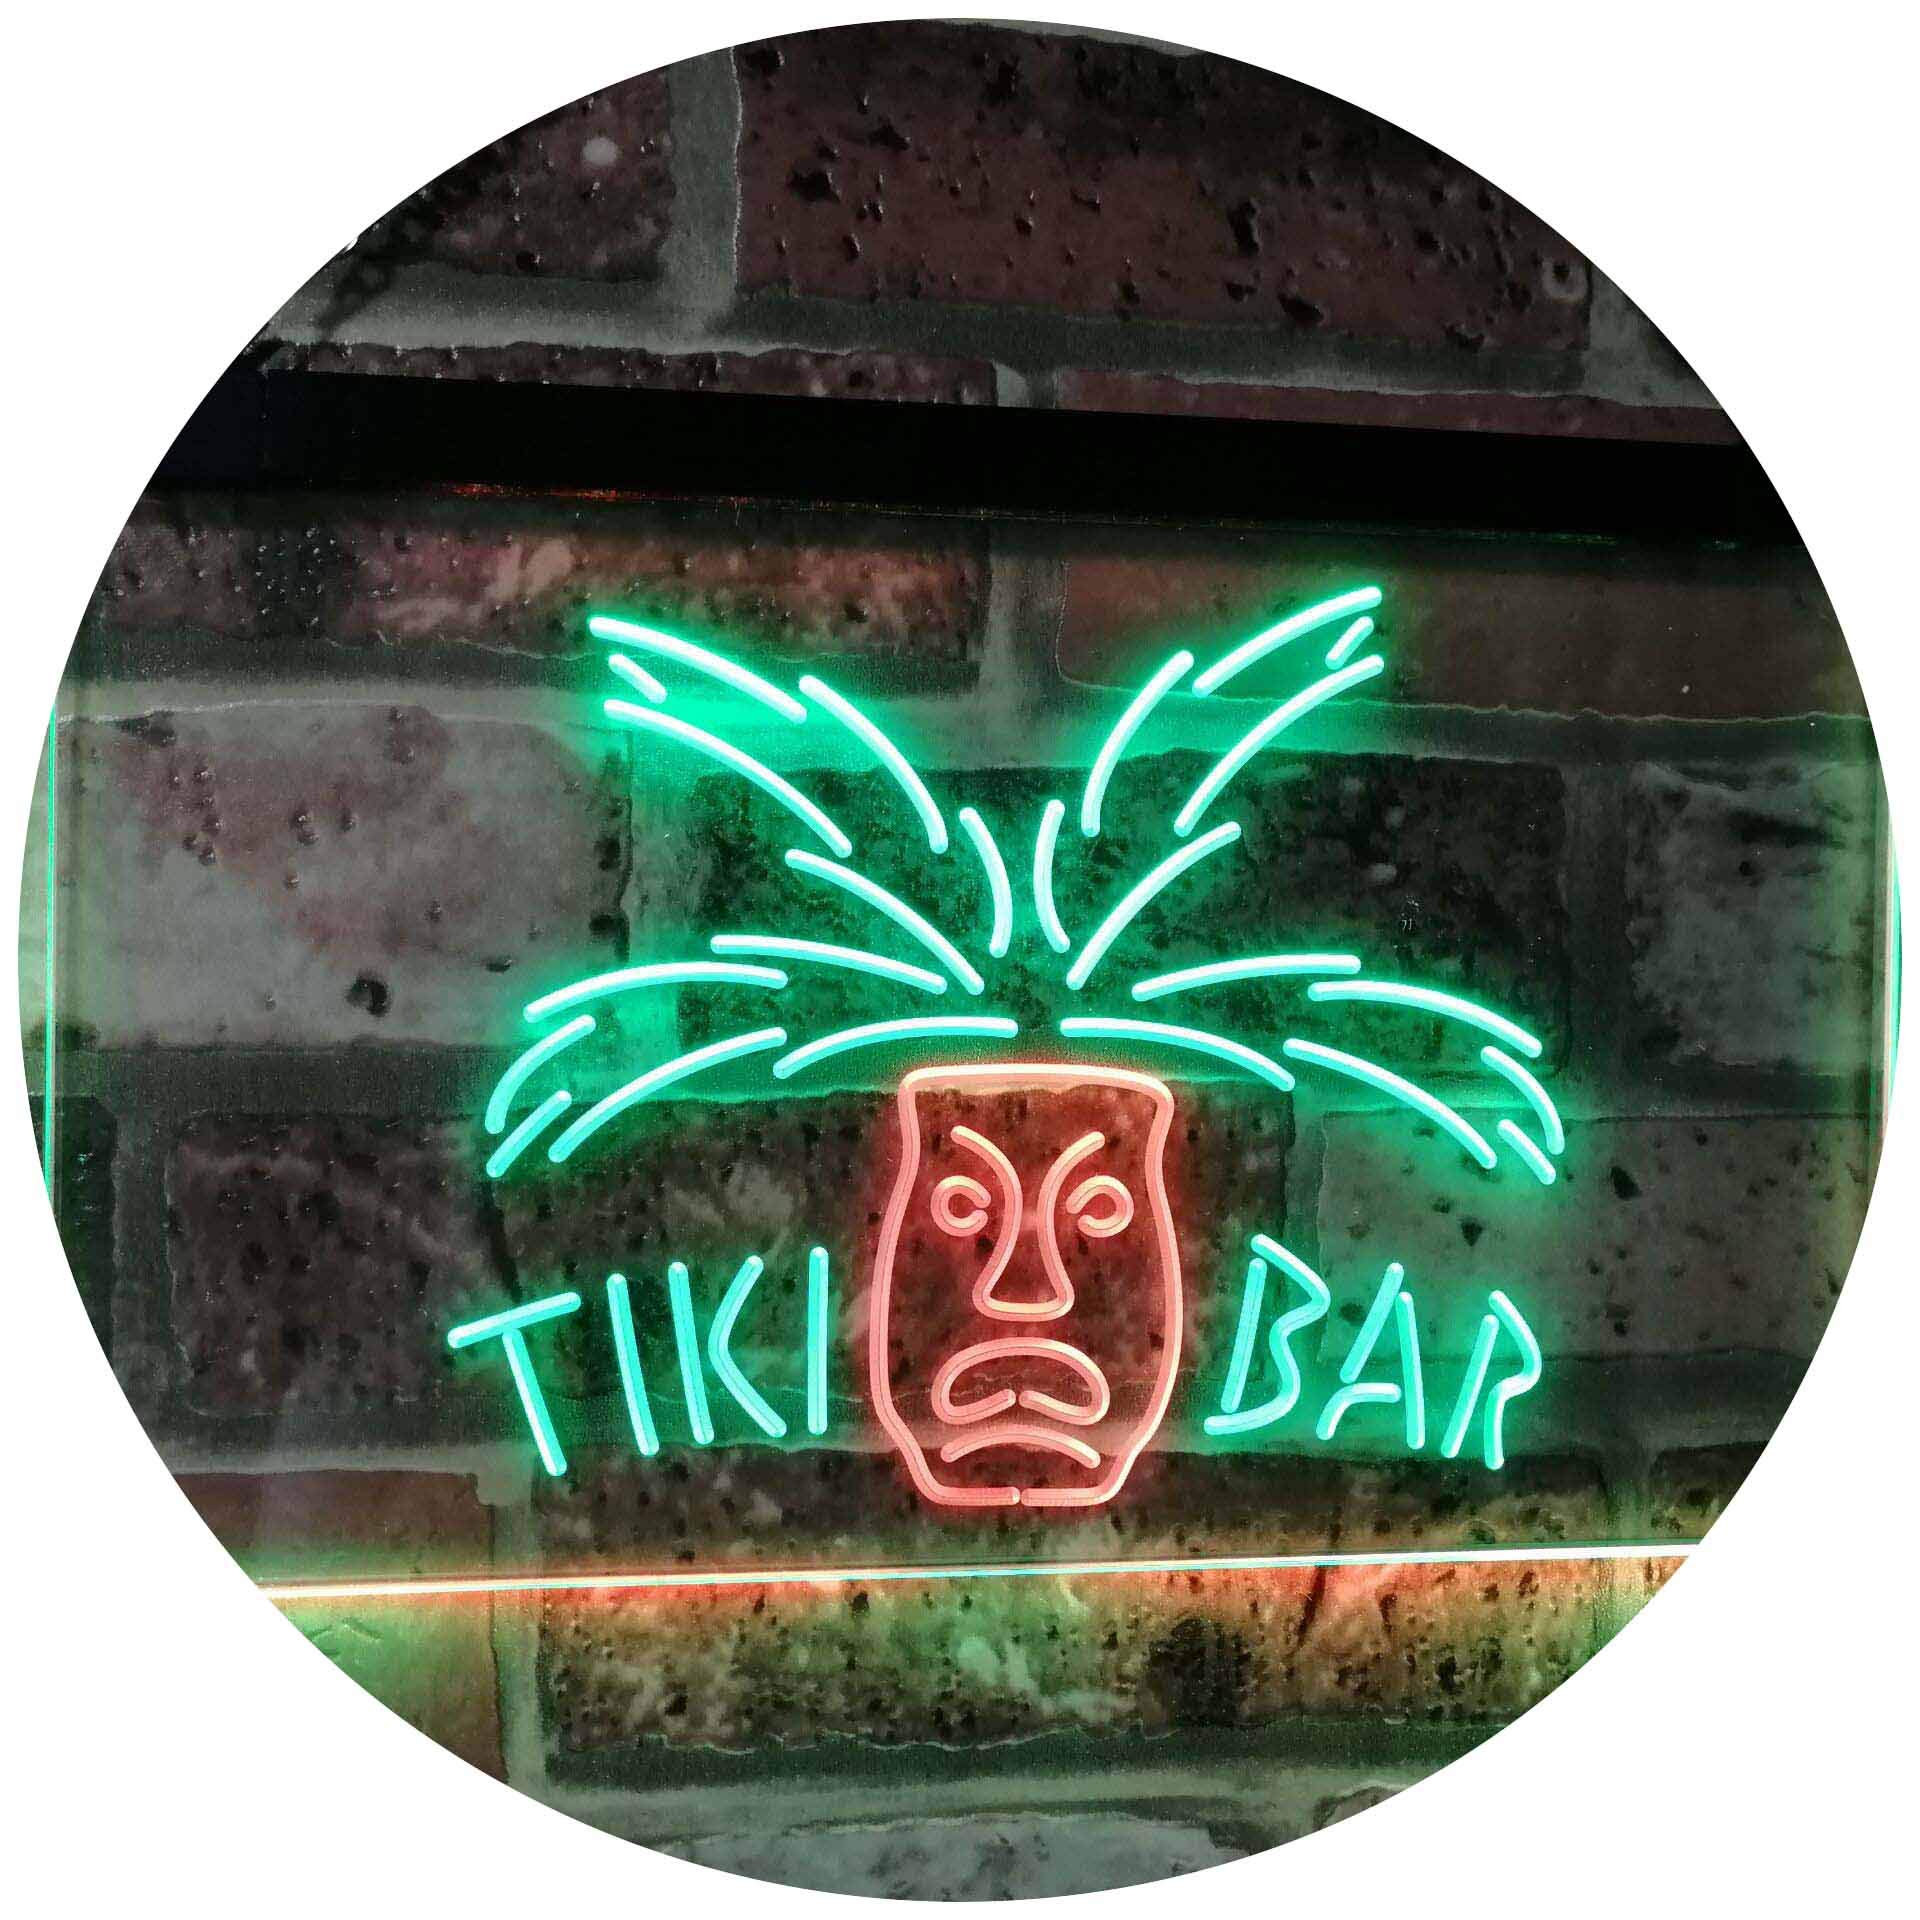 AdvpPro 2C Tiki Bar Mask Pub Club Beer Drink Happy Hour Dual Color LED Neon Sign Green & Red 12'' x 8.5'' st6s32-i2067-gr